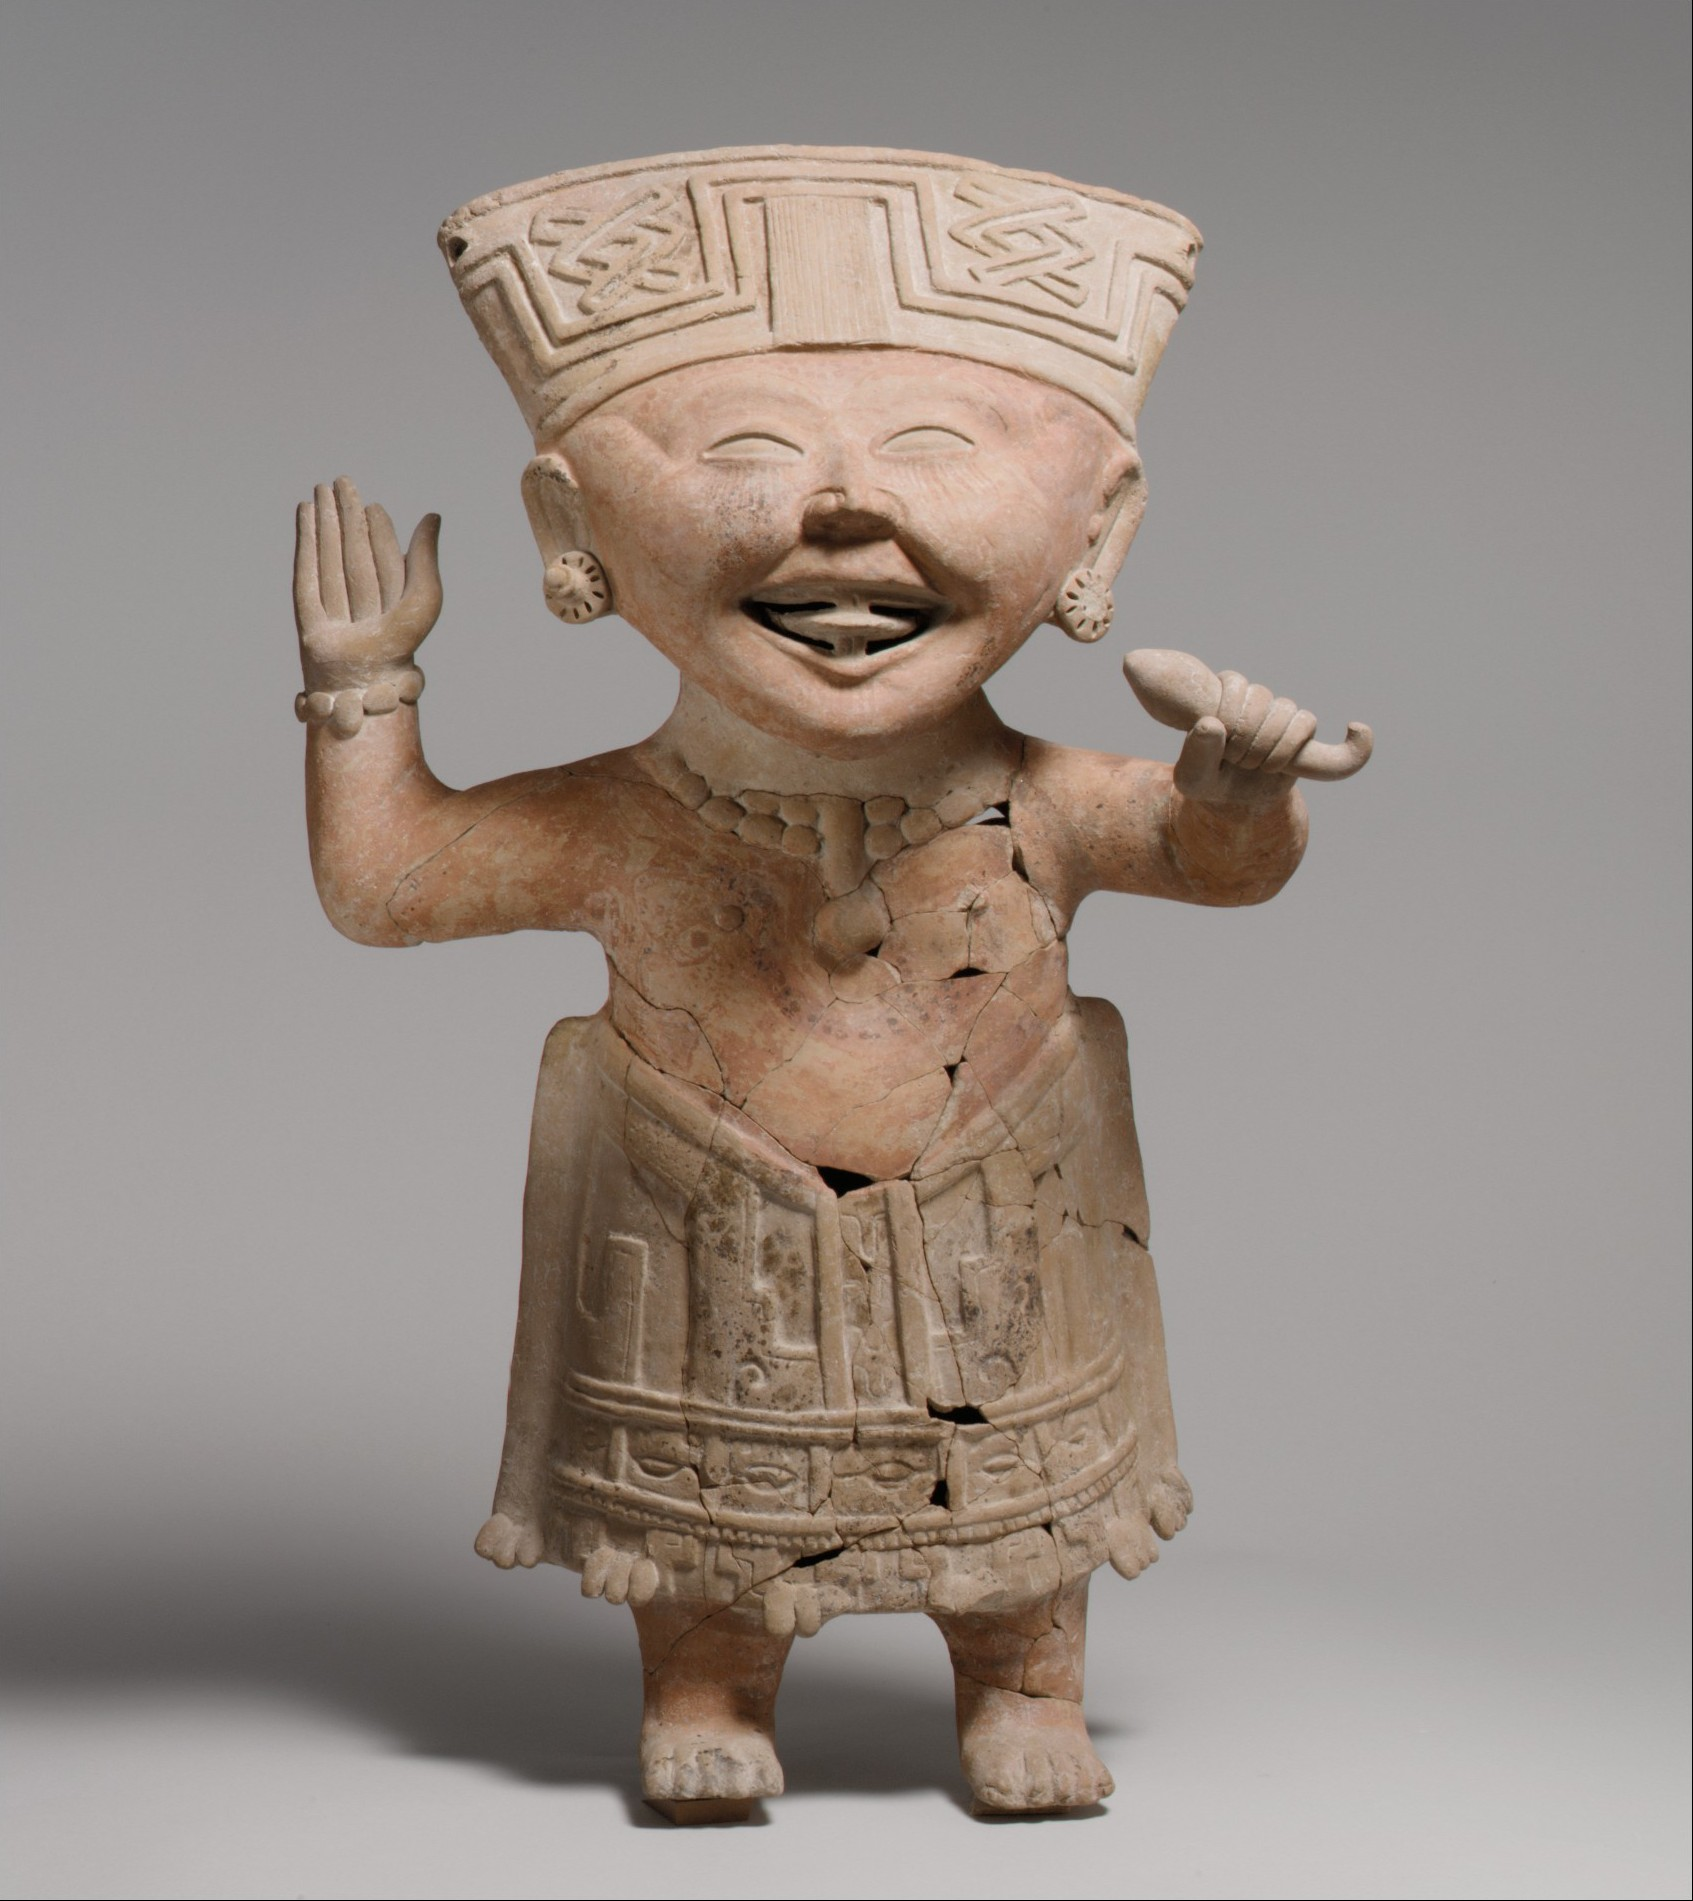 Photo of ceramic statue of a person, smilling with arms upraised.